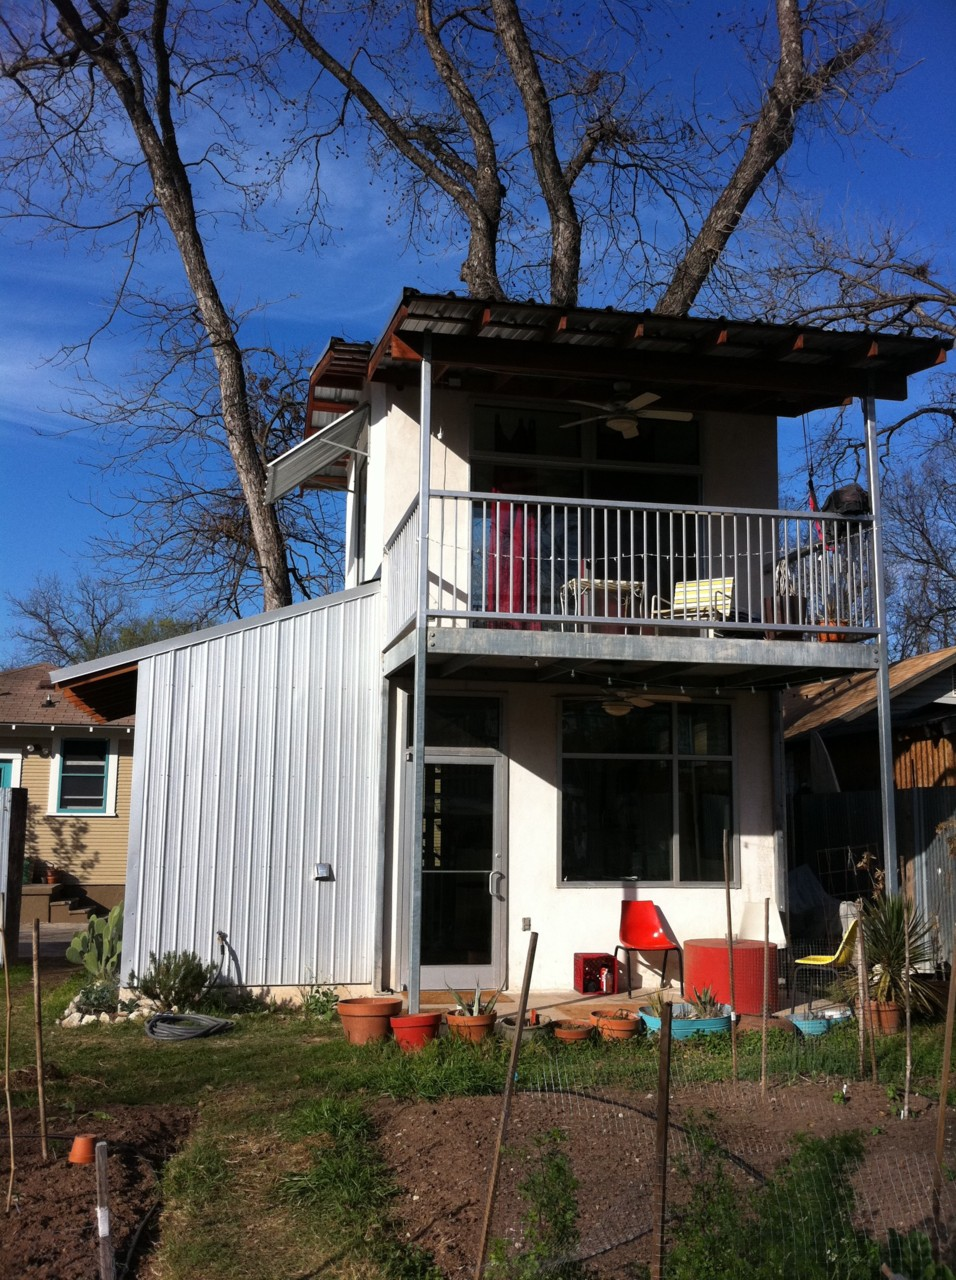 My SXSW experience included a littlemetallichouse Again, I used Airbnb. The tiny house was primarily glass, metal, concrete, and wood (like an Apple store). The room sticking out on the left is the bathroom. Behind me is the chicken coop, and in front is the garden that I was required to water.